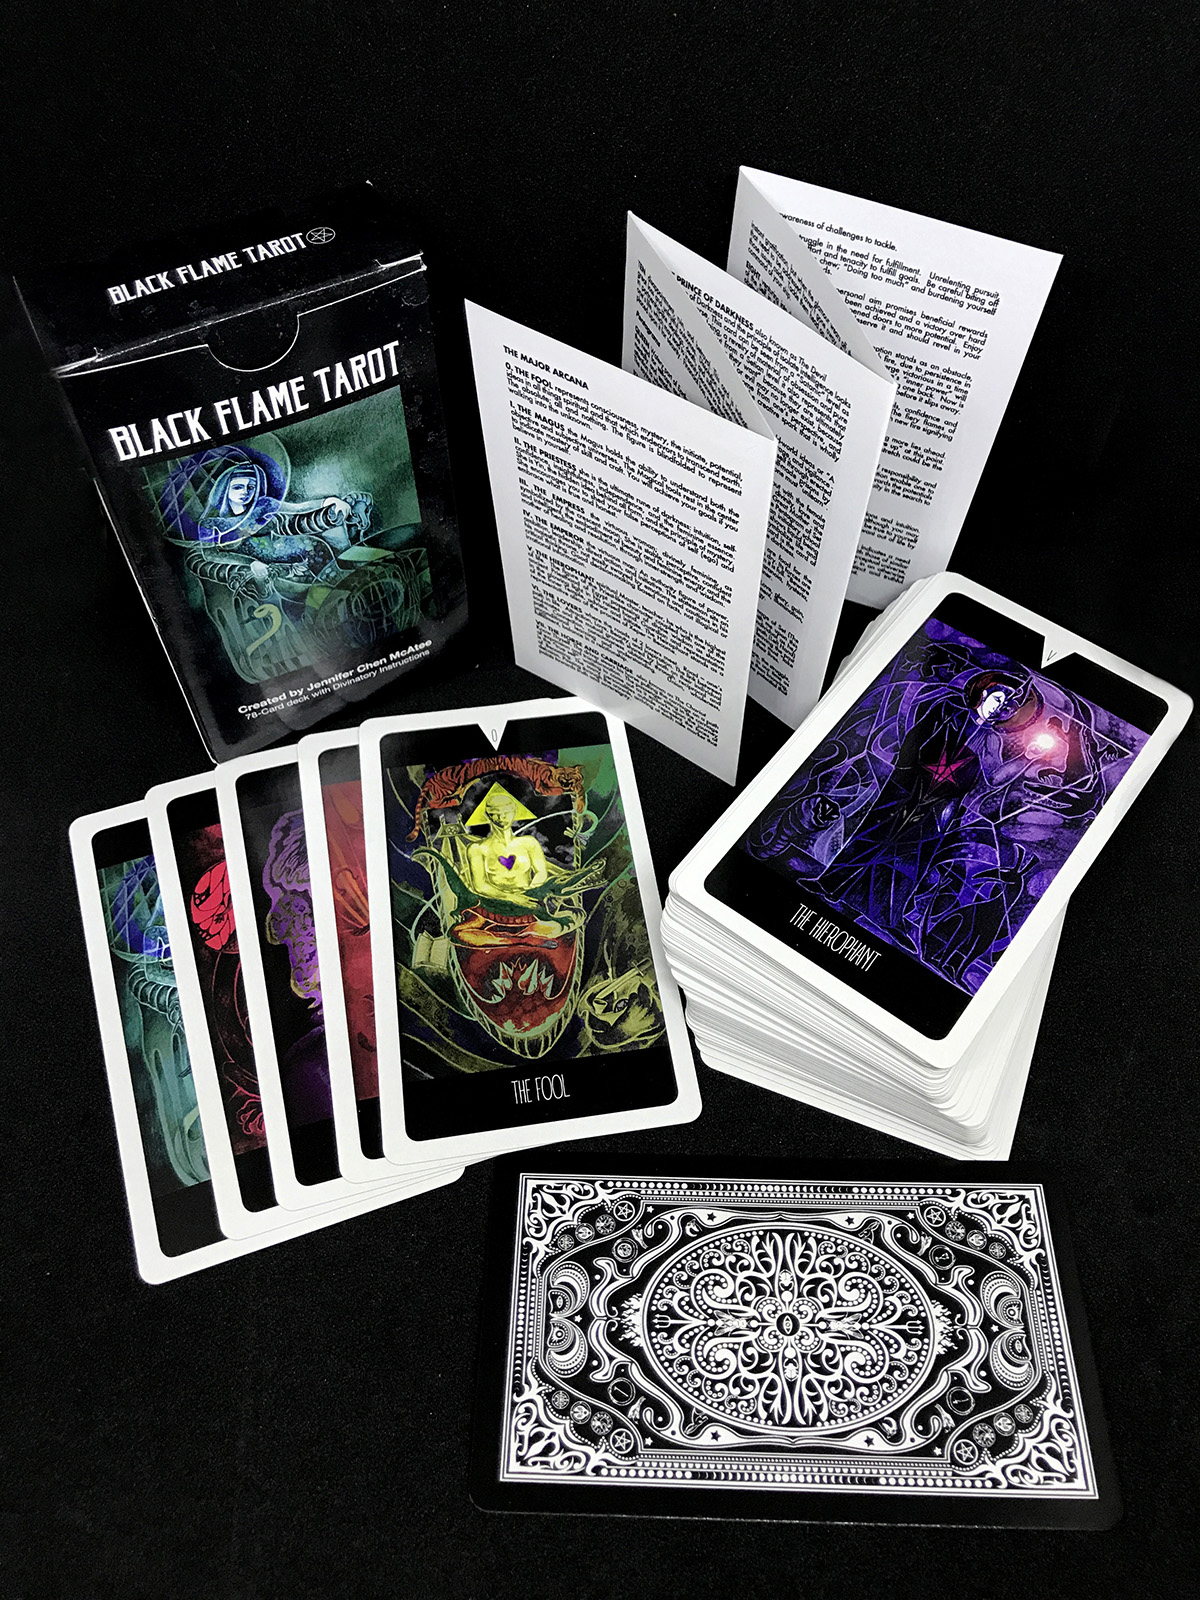 The Black Flame Tarot